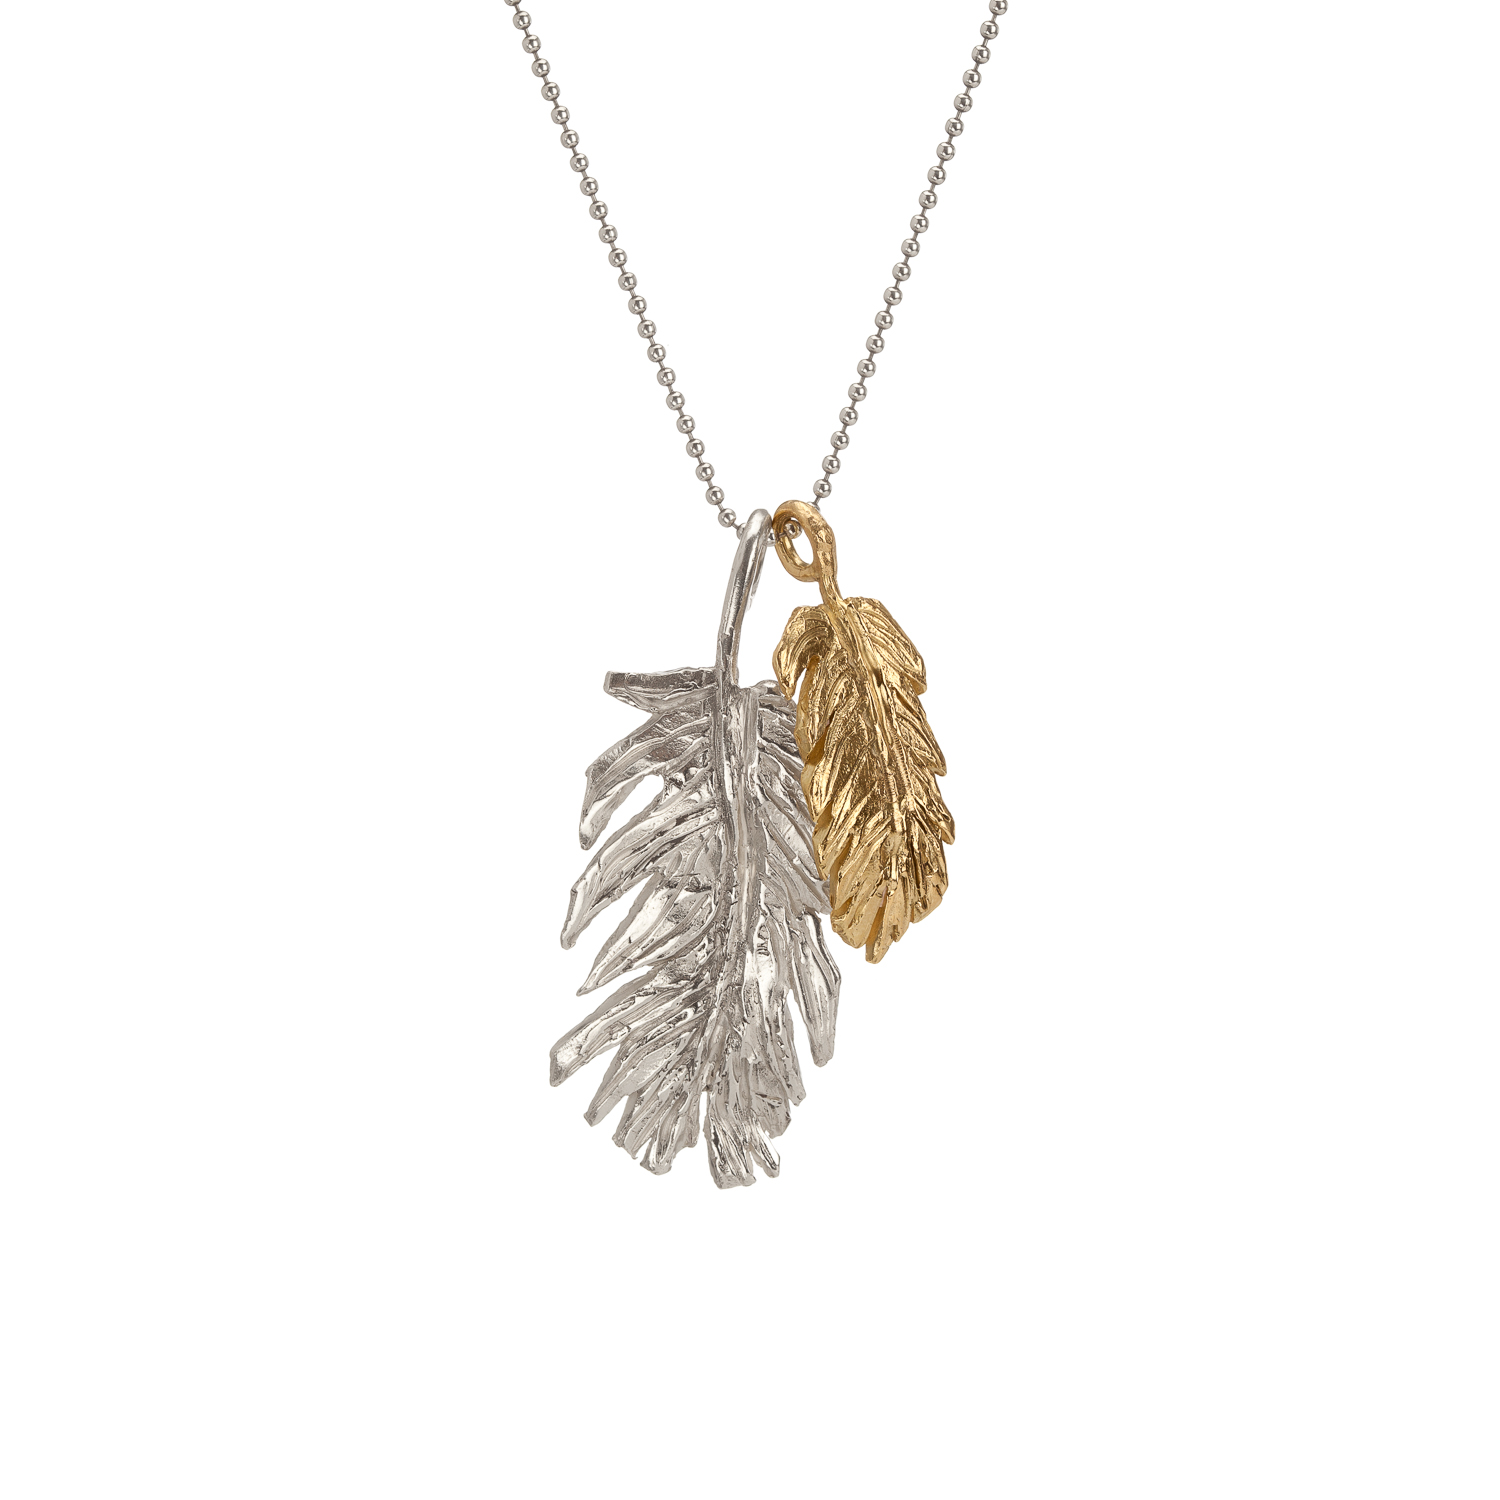 Feather | 18k gold and sterling silver